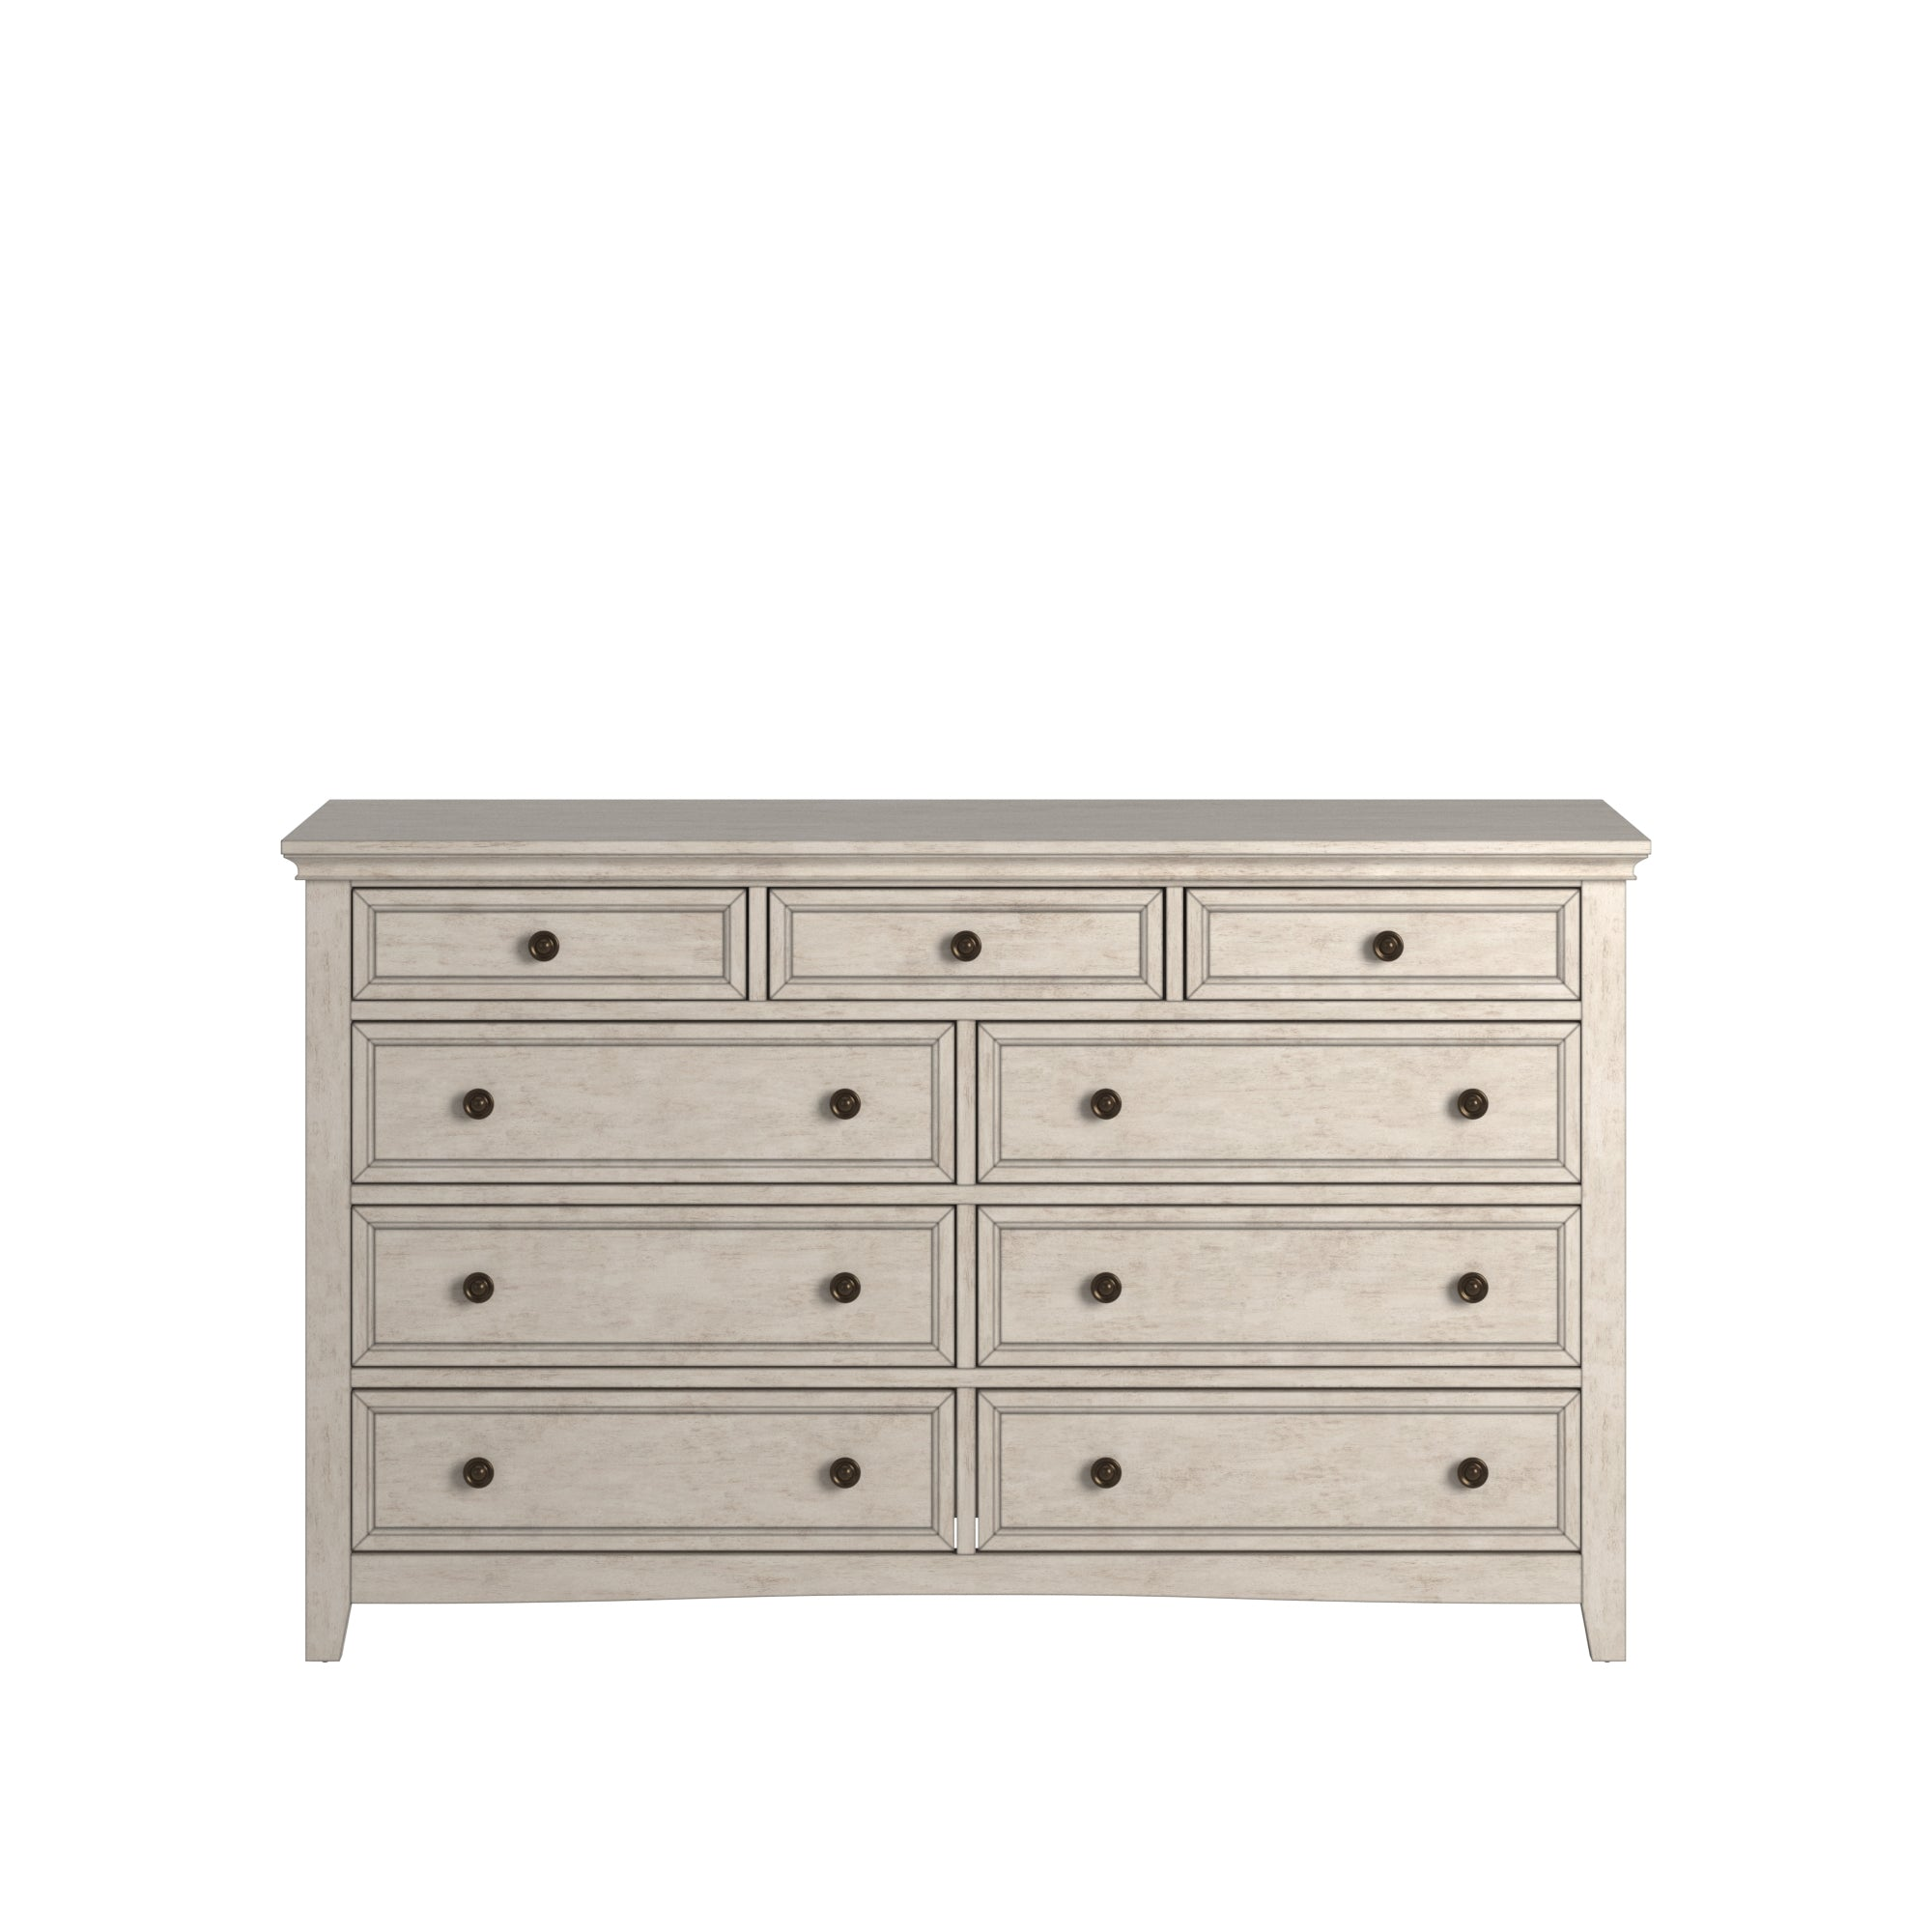 9-drawer Wood Modular Storage Dresser - Antique White Color Finish Dresser Only